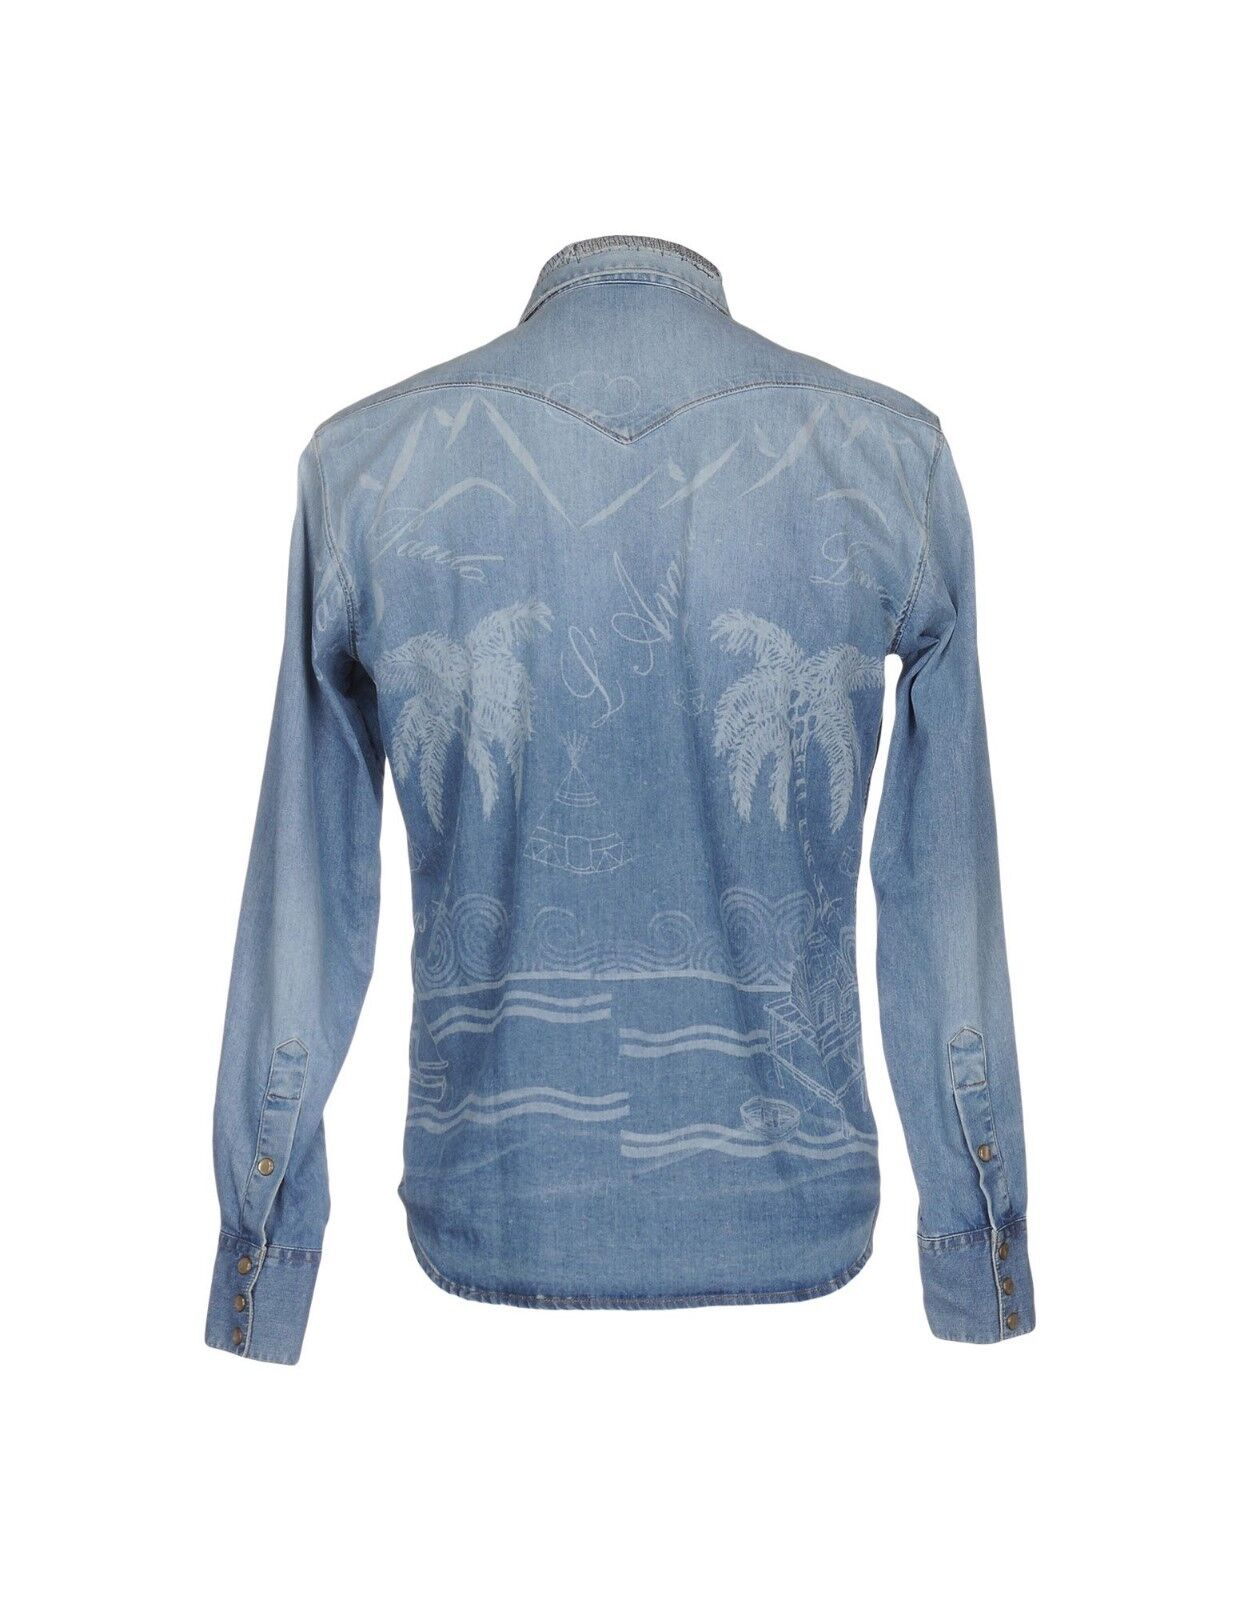 (+) PEOPLE DENIM JEANS SHIRT CAMISA VAQUERA Dimensione 52 52 52 TROPICAL MADE IN ITALY 1c2b06